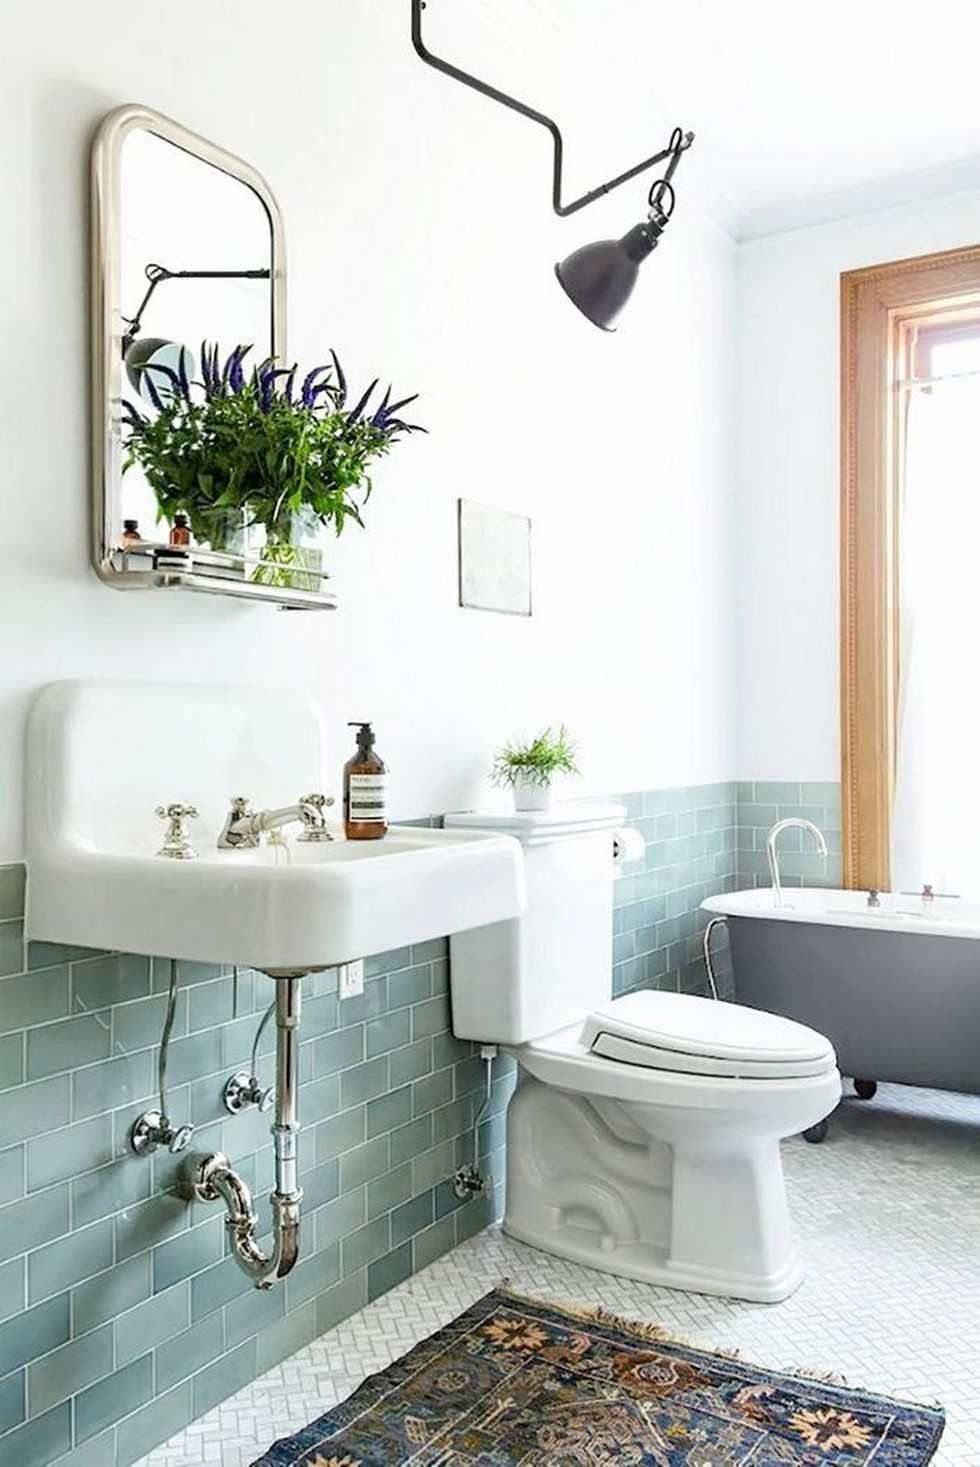 24+ Fascinating Toilet That You Must Know